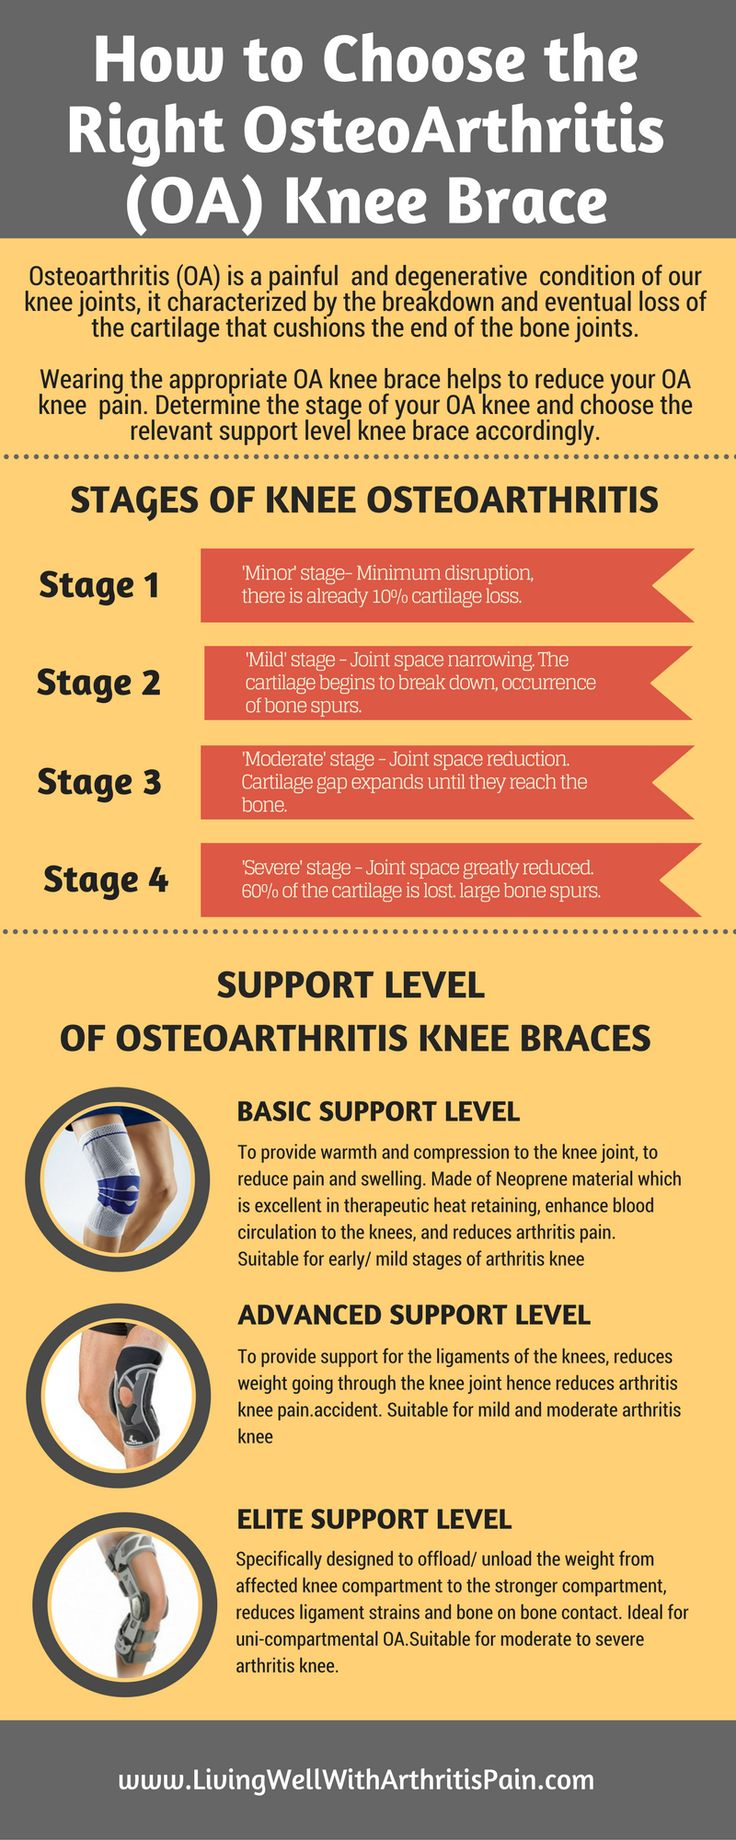 How To Choose The Right OsteoArthritis Knee Brace - Living Well With Arthritis…